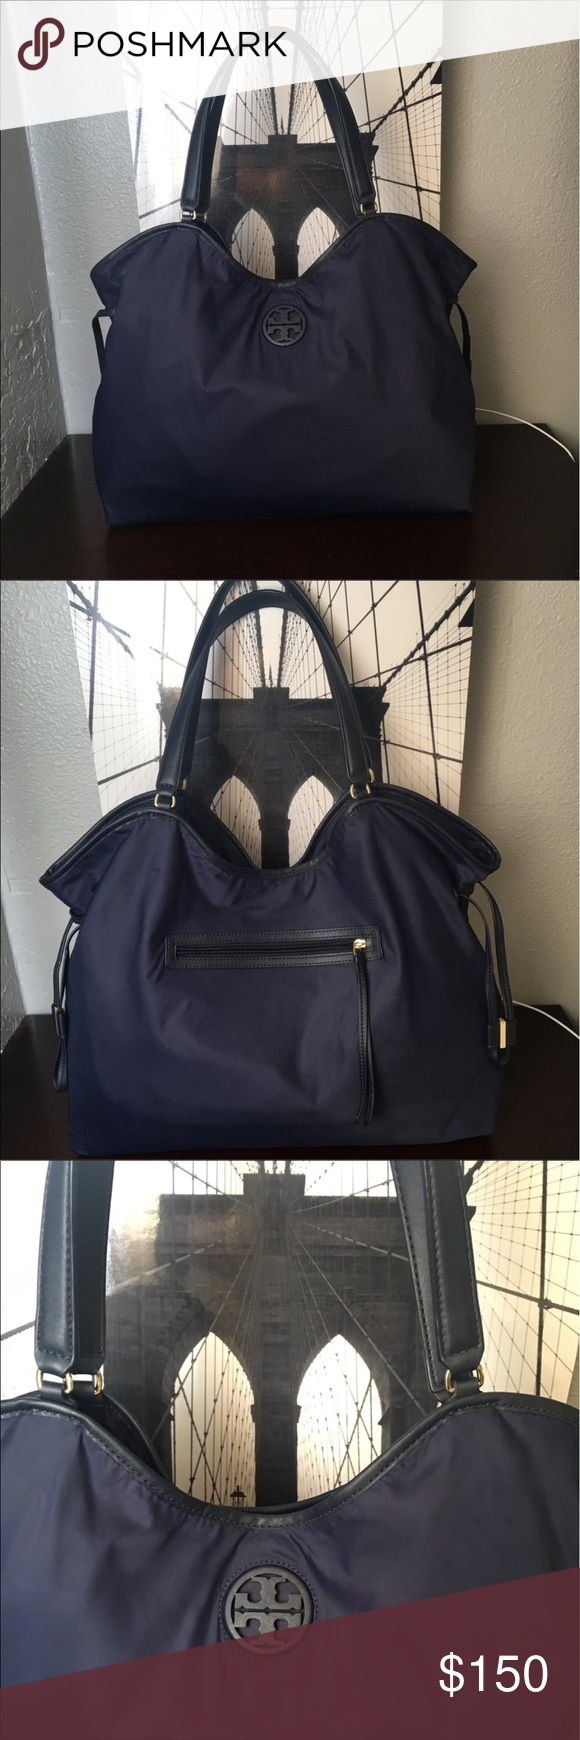 "Tory Burch Slouchy Nylon Tote. HideSize Info 19 ½""W x 14""H x 5 ½""D. (Interior capacity: extra-large.) 9"" strap drop. Tory Burch Bags Totes"